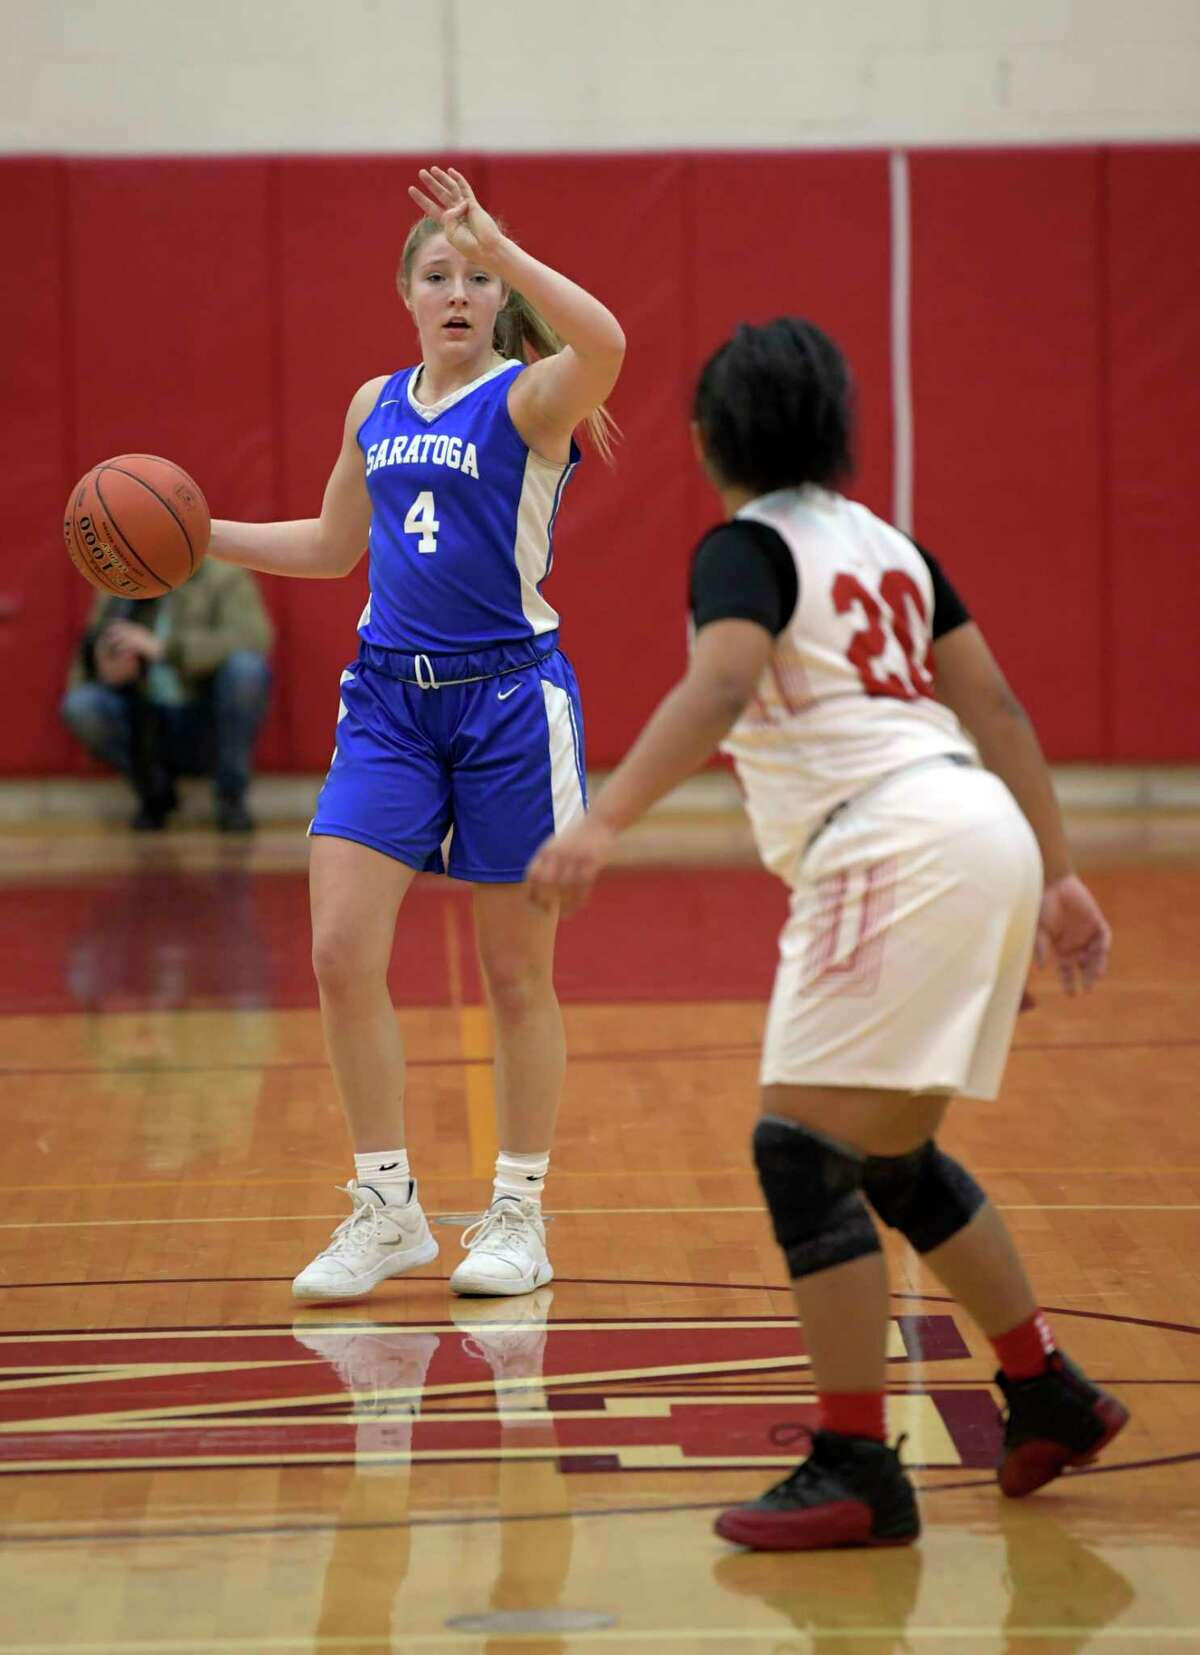 Saratoga's Abby Ray (4) moves the ball against Niskayuna's Ivian Owens (20) during the first half of a Section II girls' basketball game Thursday, Dec. 19, 2019, in Niskayuna, N.Y. (Hans Pennink / Special to the Times Union) ORG XMIT: 122019_hsbb_HP102